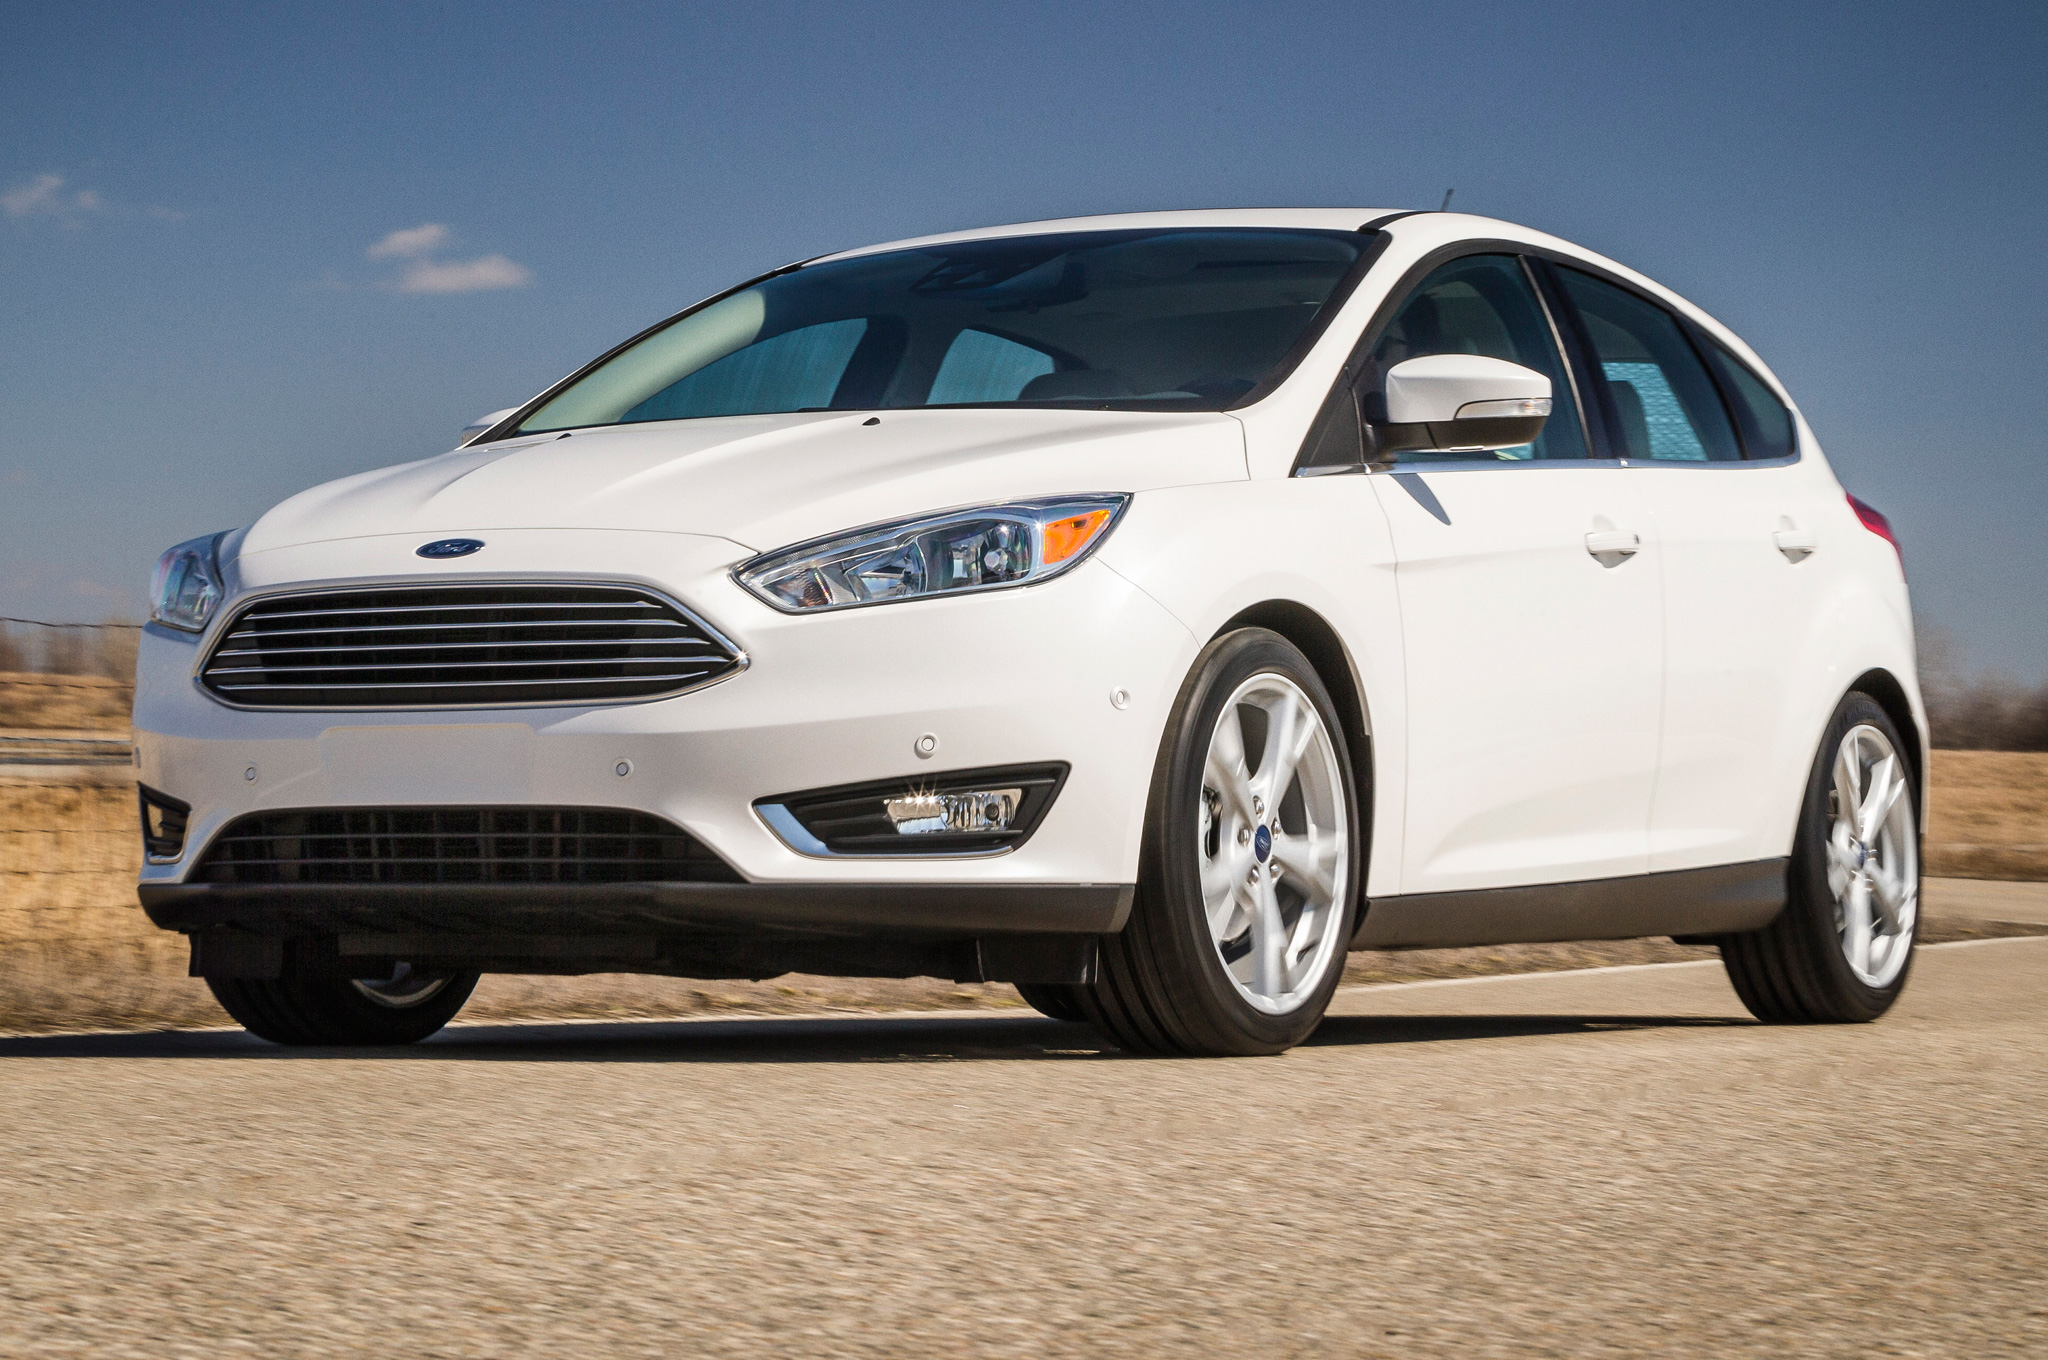 2018 Ford Focus Sedan Car Photos Catalog 2018